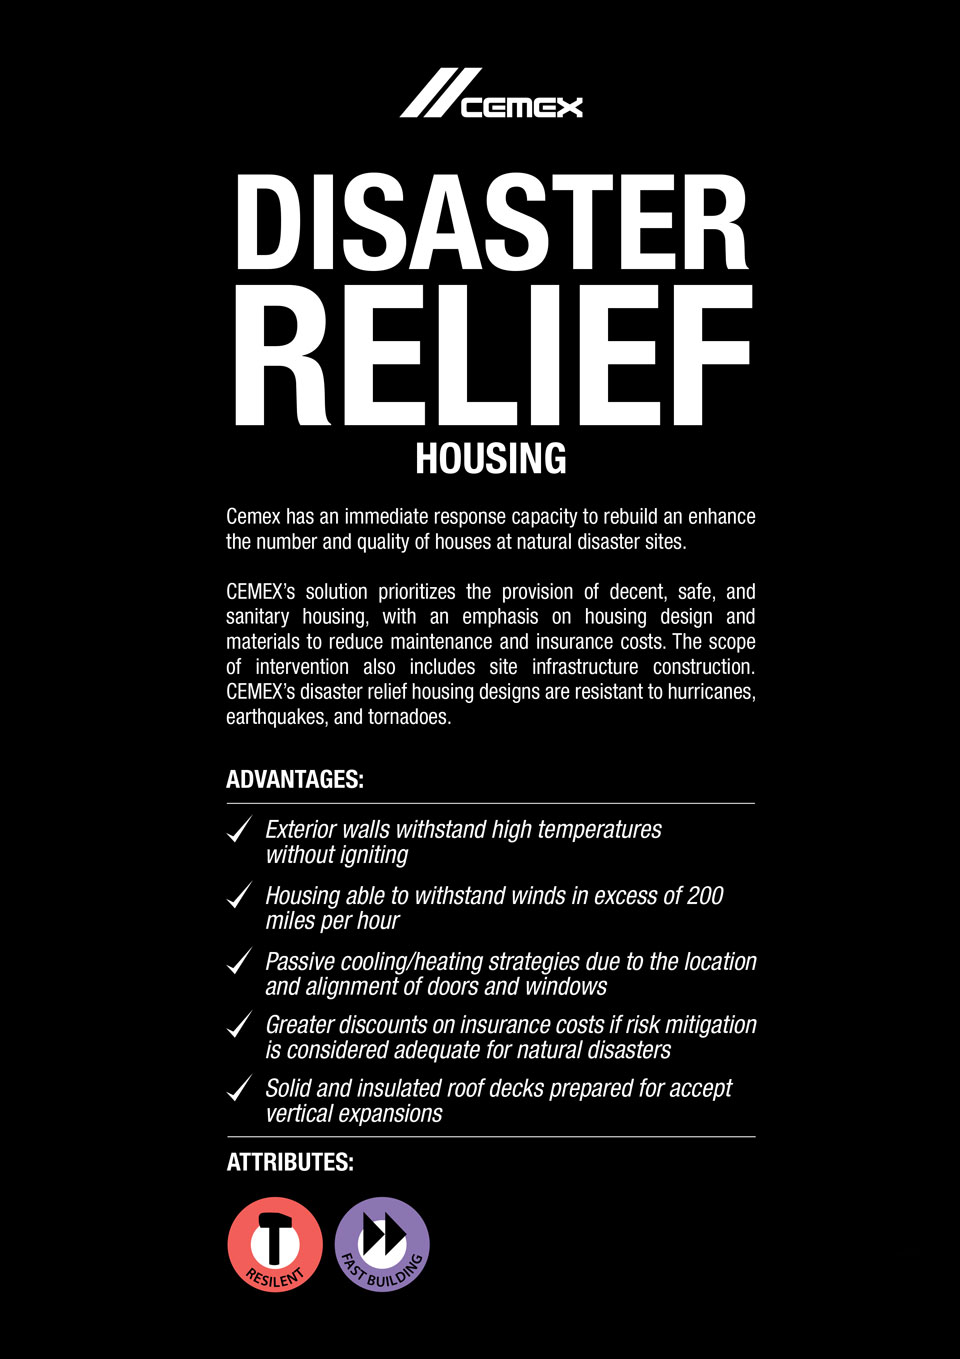 An image describing the advanages and characteristics of the Disaster Relief Housing solution.